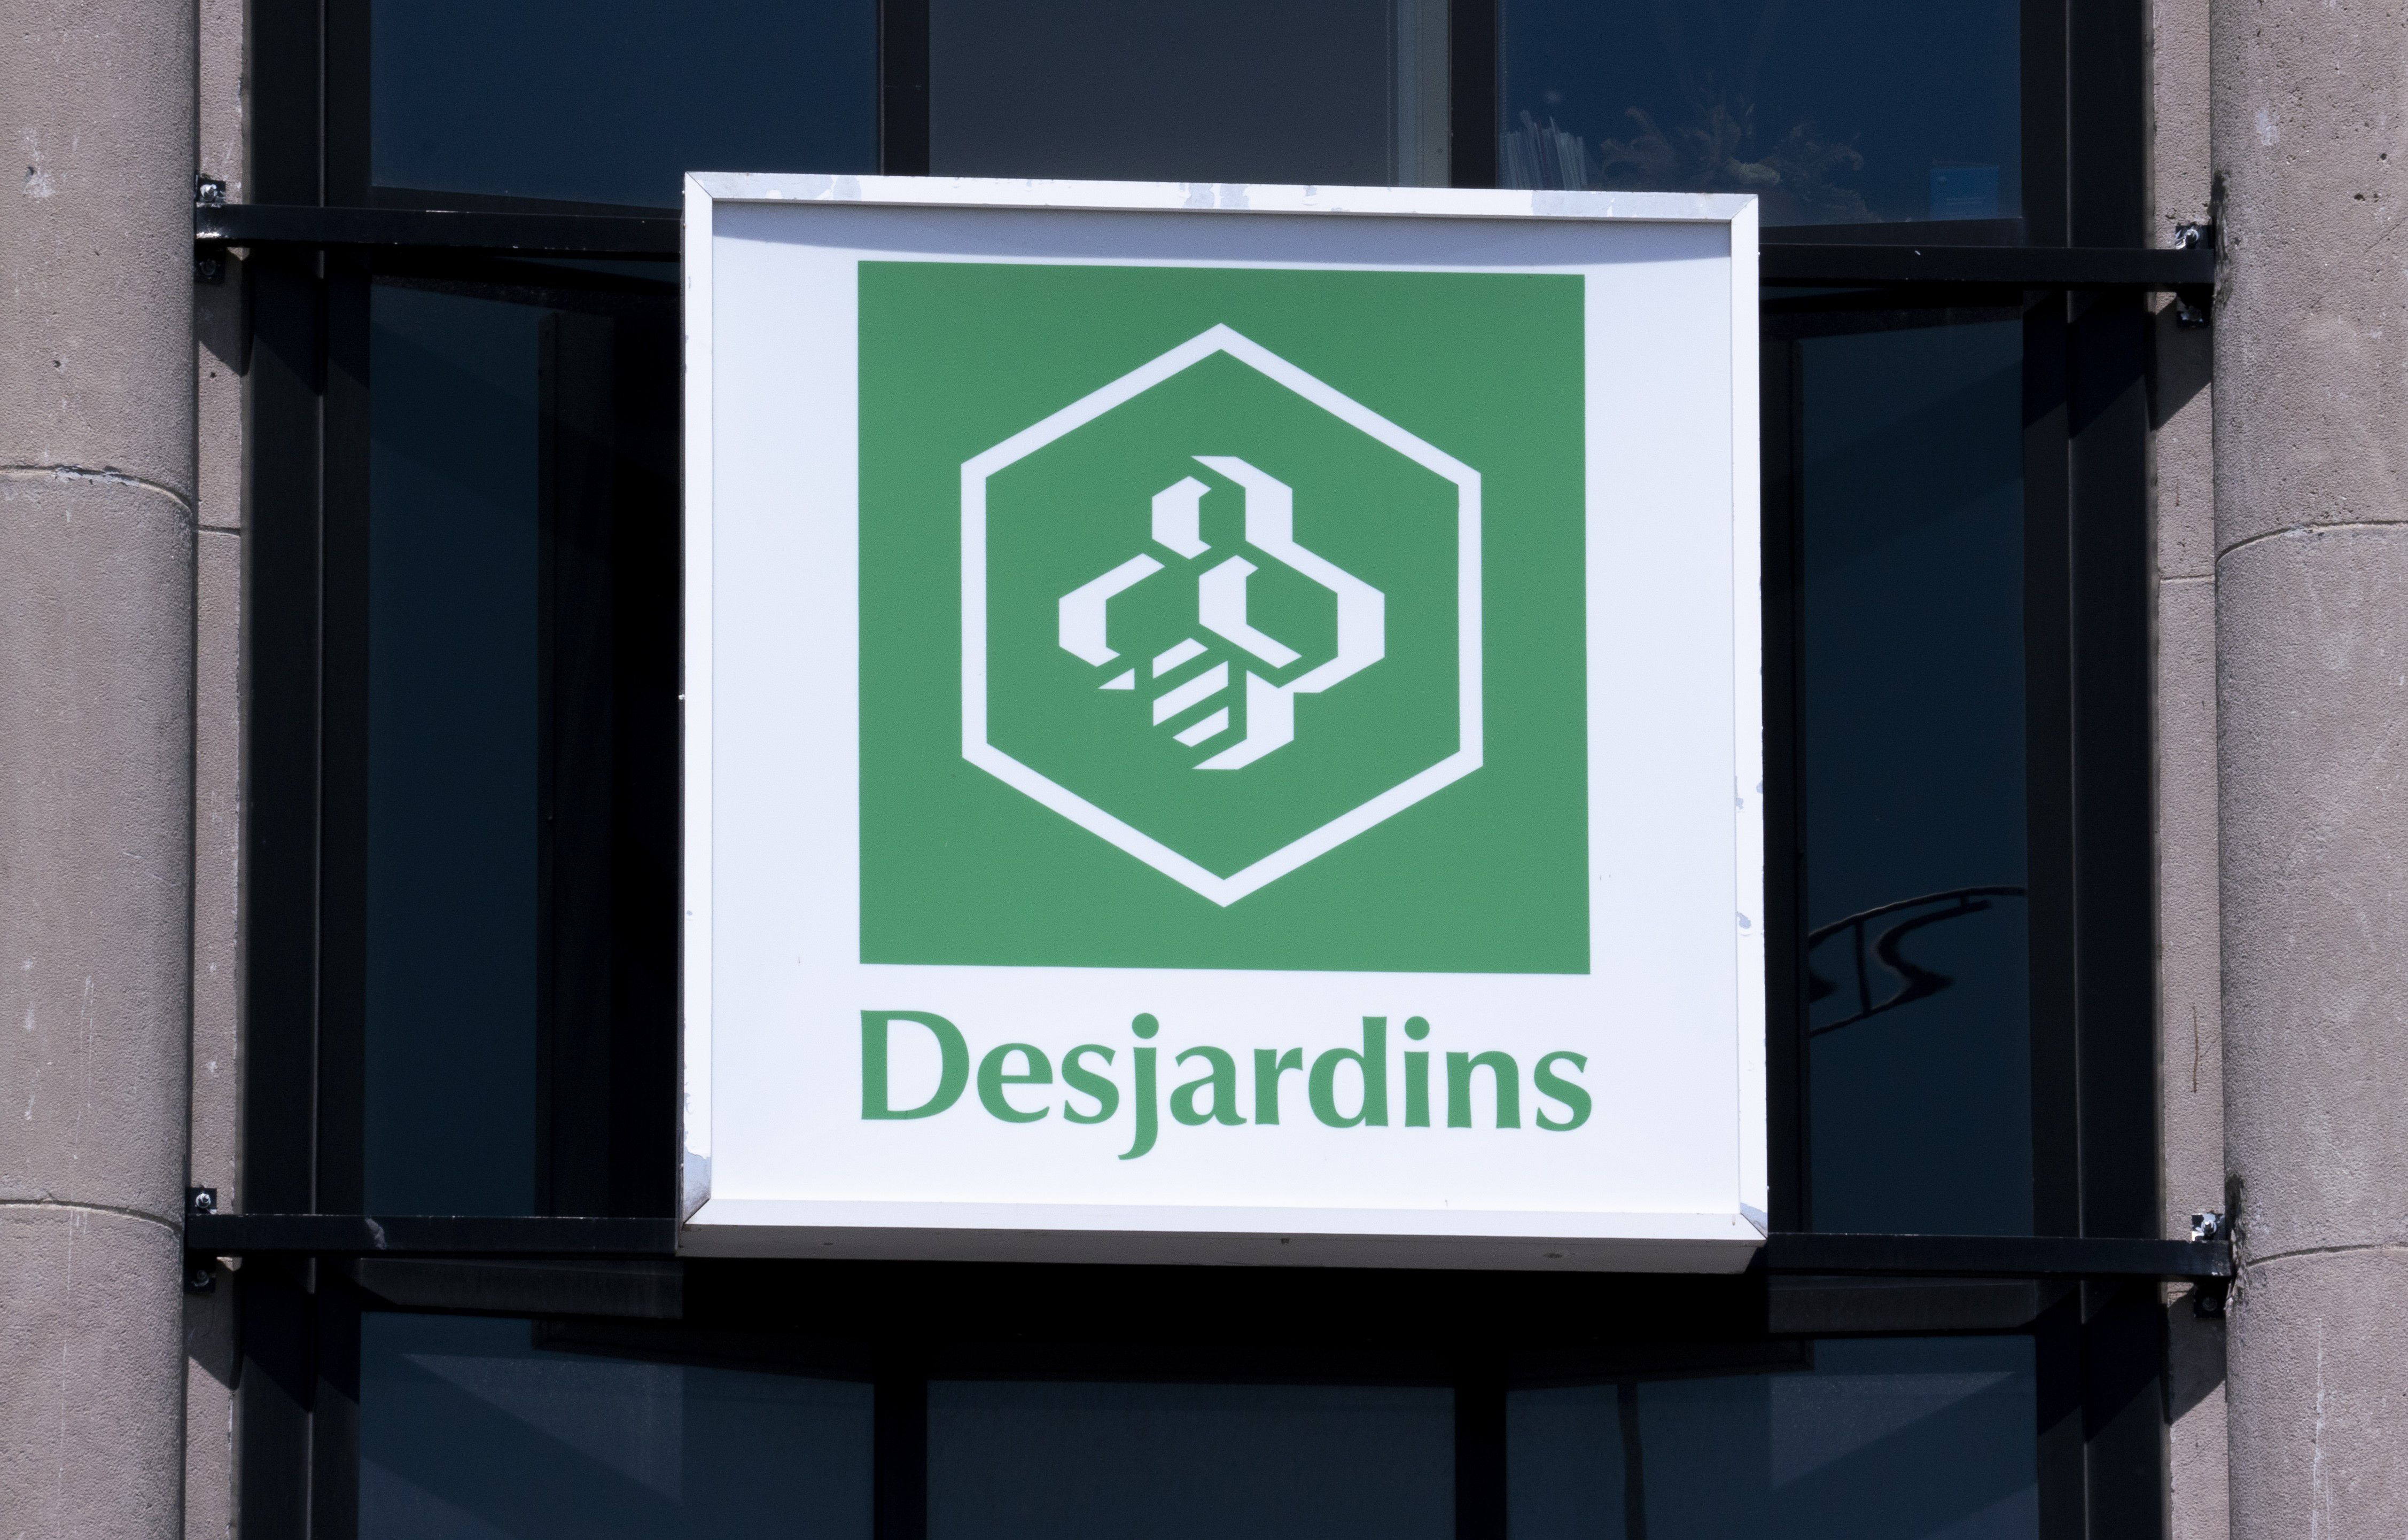 After initial response to data breach fell short, Desjardins CEO has a long summer of damage control ahead